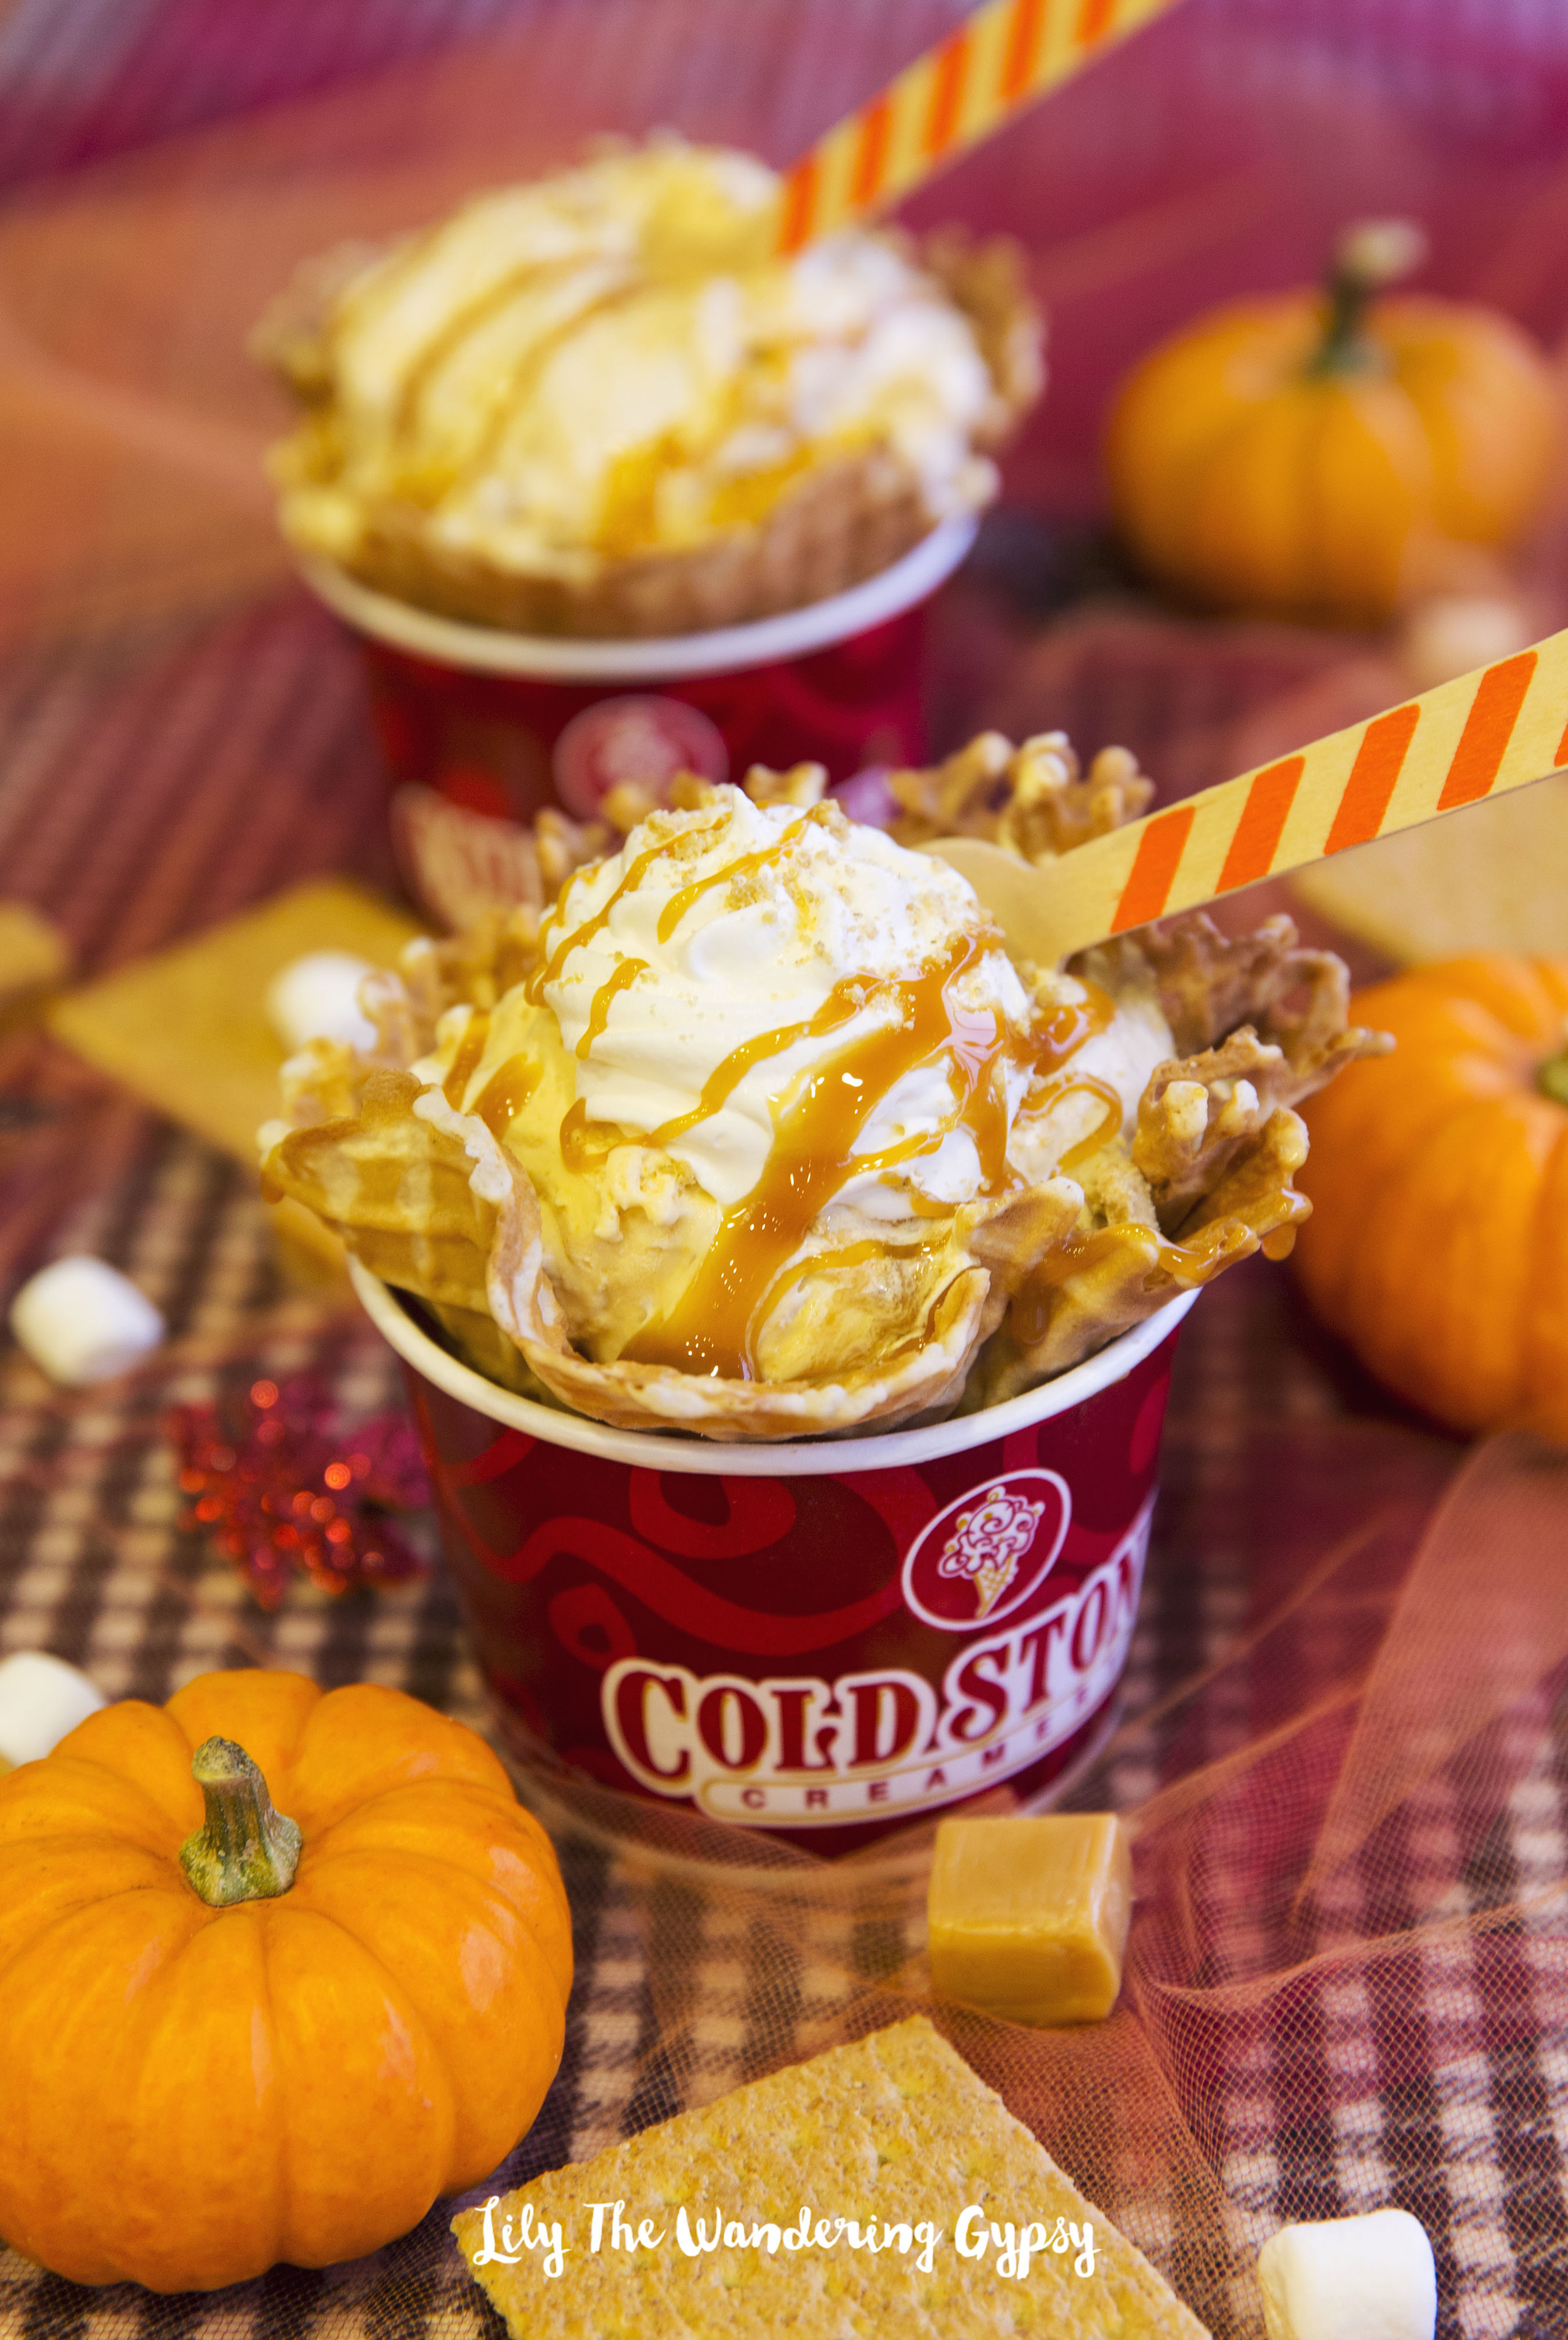 Cold Stone Creamery - Pumpkin Pie In The Sky